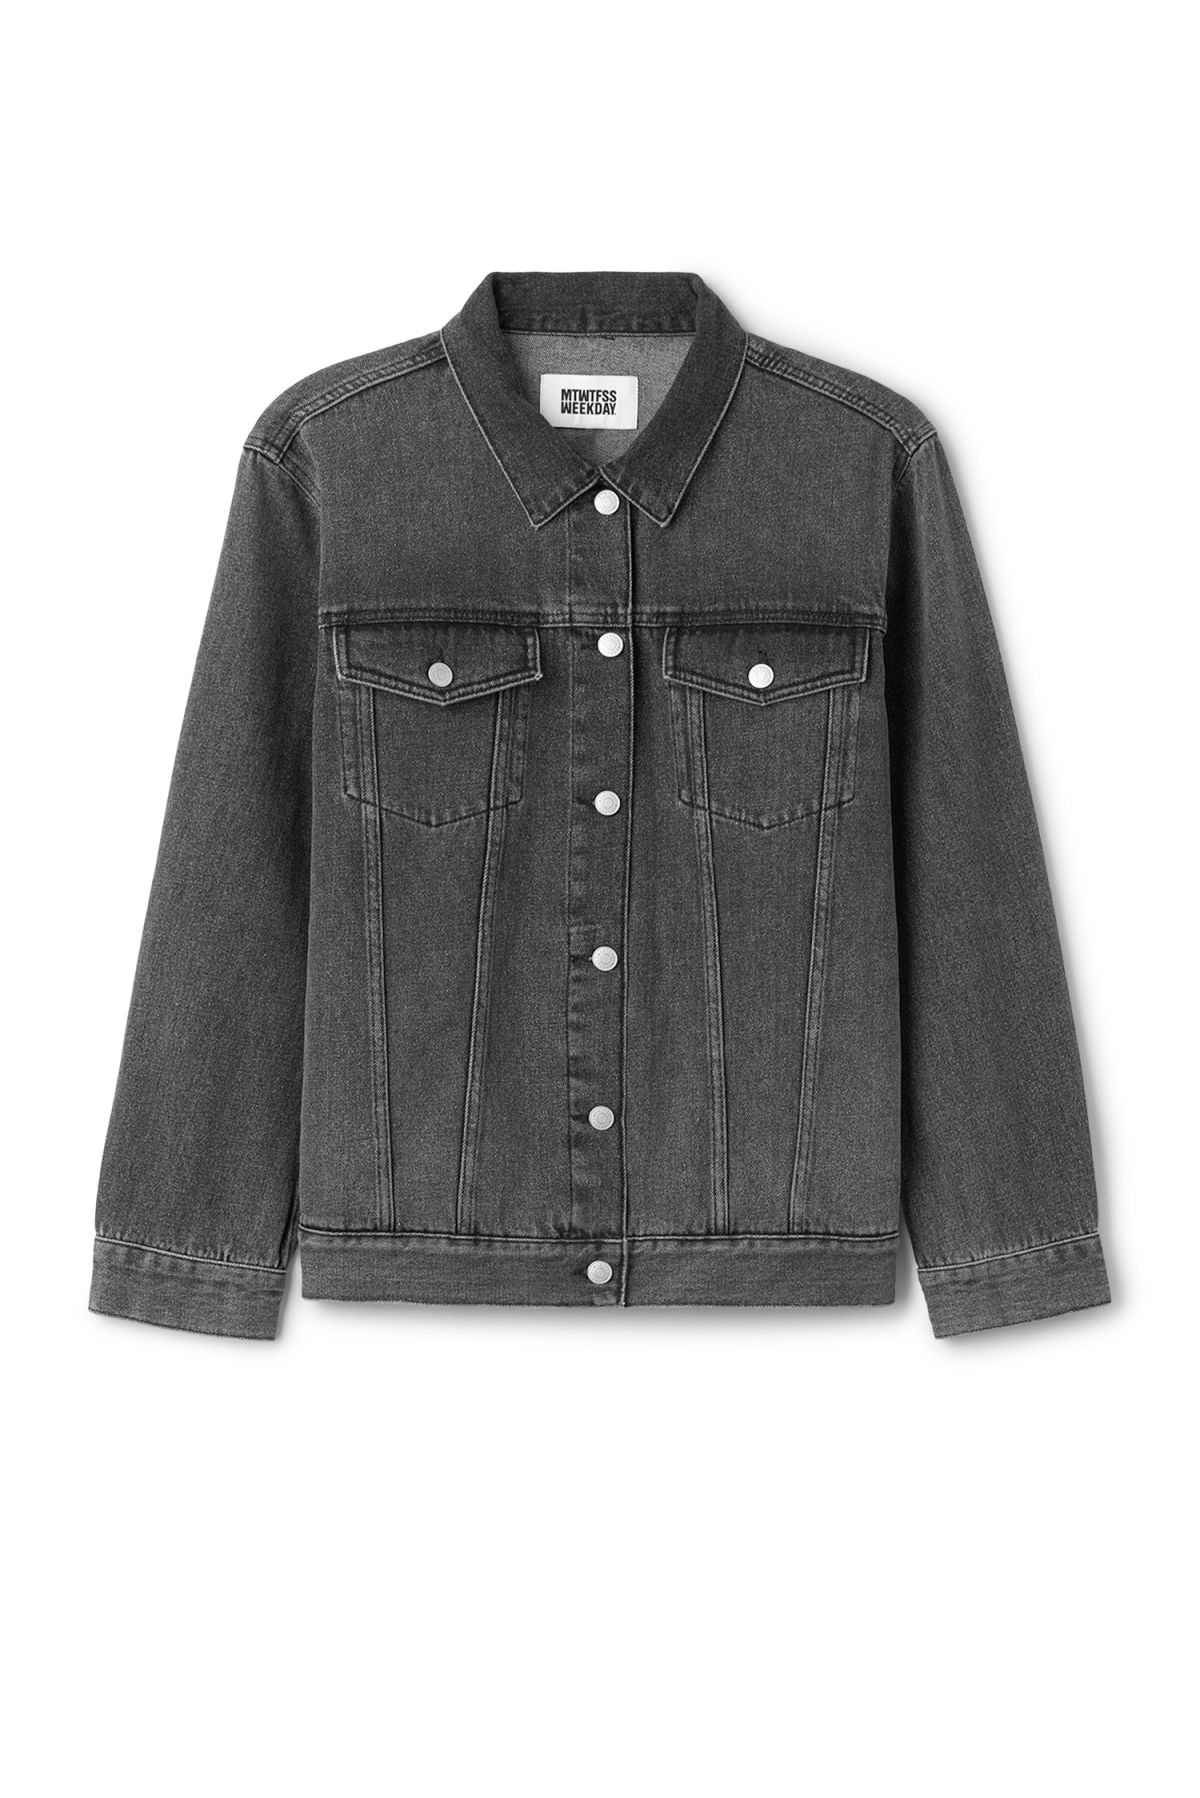 Double Denim Jacket - Black - Jackets & coats - Weekday